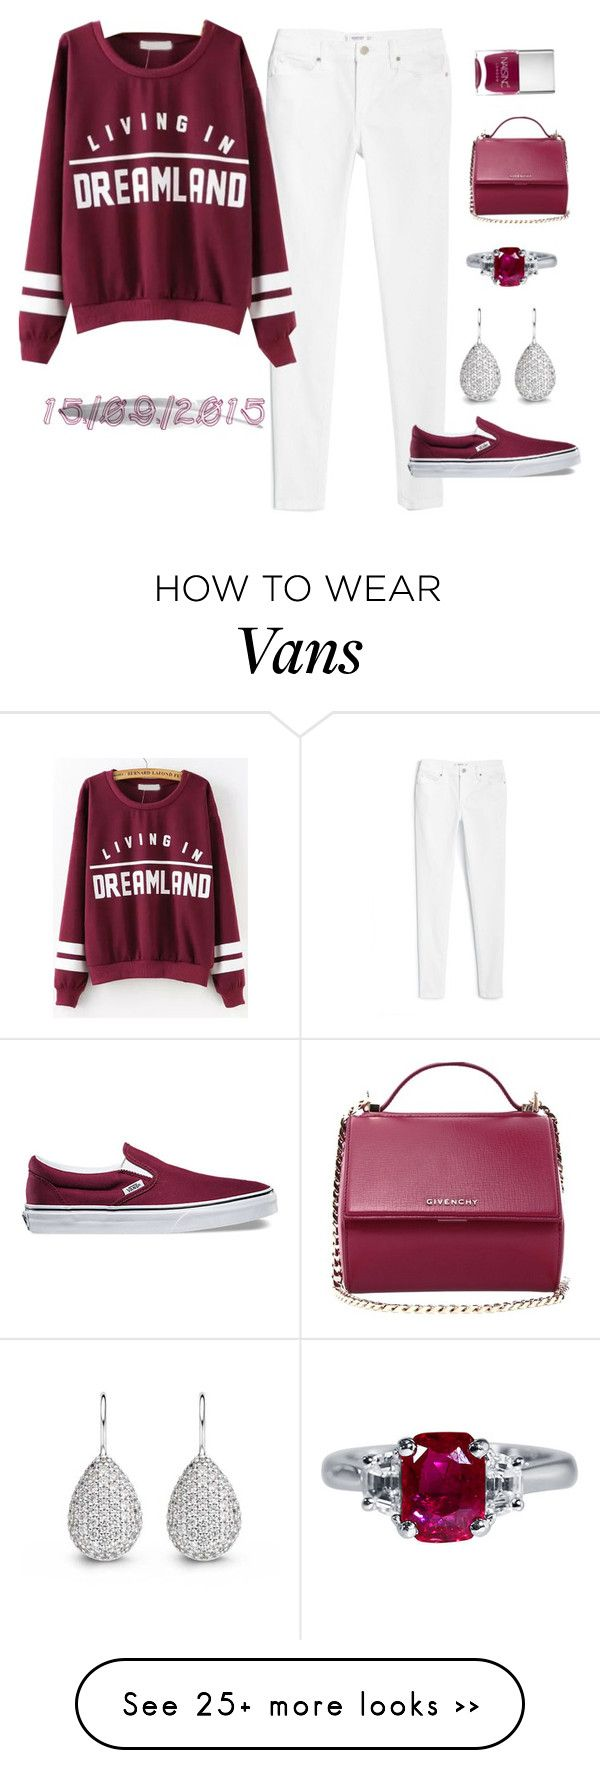 """""""15/09/2015"""" by apcquintela on Polyvore featuring MANGO, Vans, Givenchy and Nails Inc."""